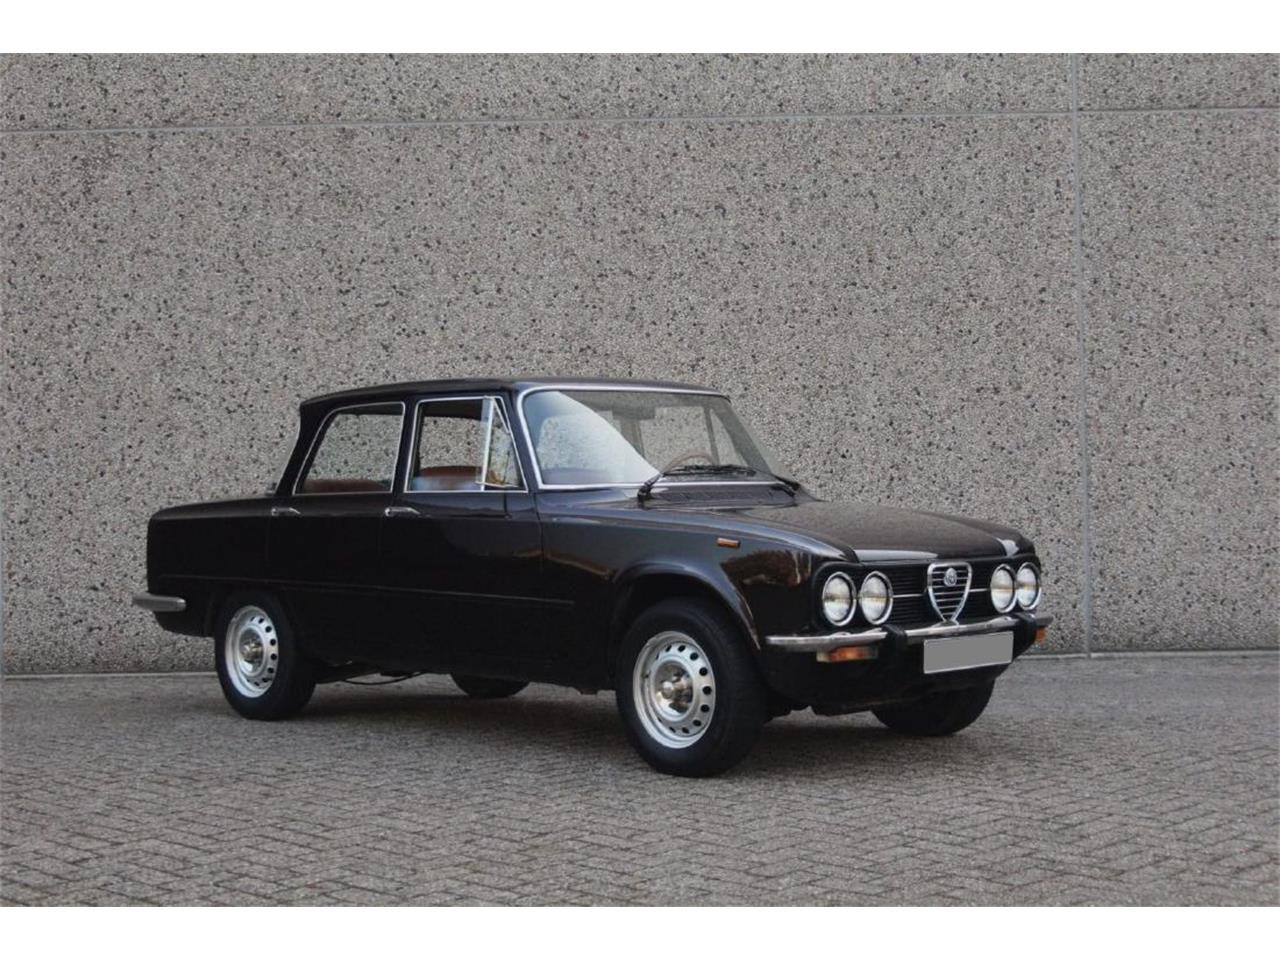 Large Picture of 1976 Alfa Romeo Giulia Super Nuova Super 1300 Auction Vehicle Offered by Live Auctioneers - P13P